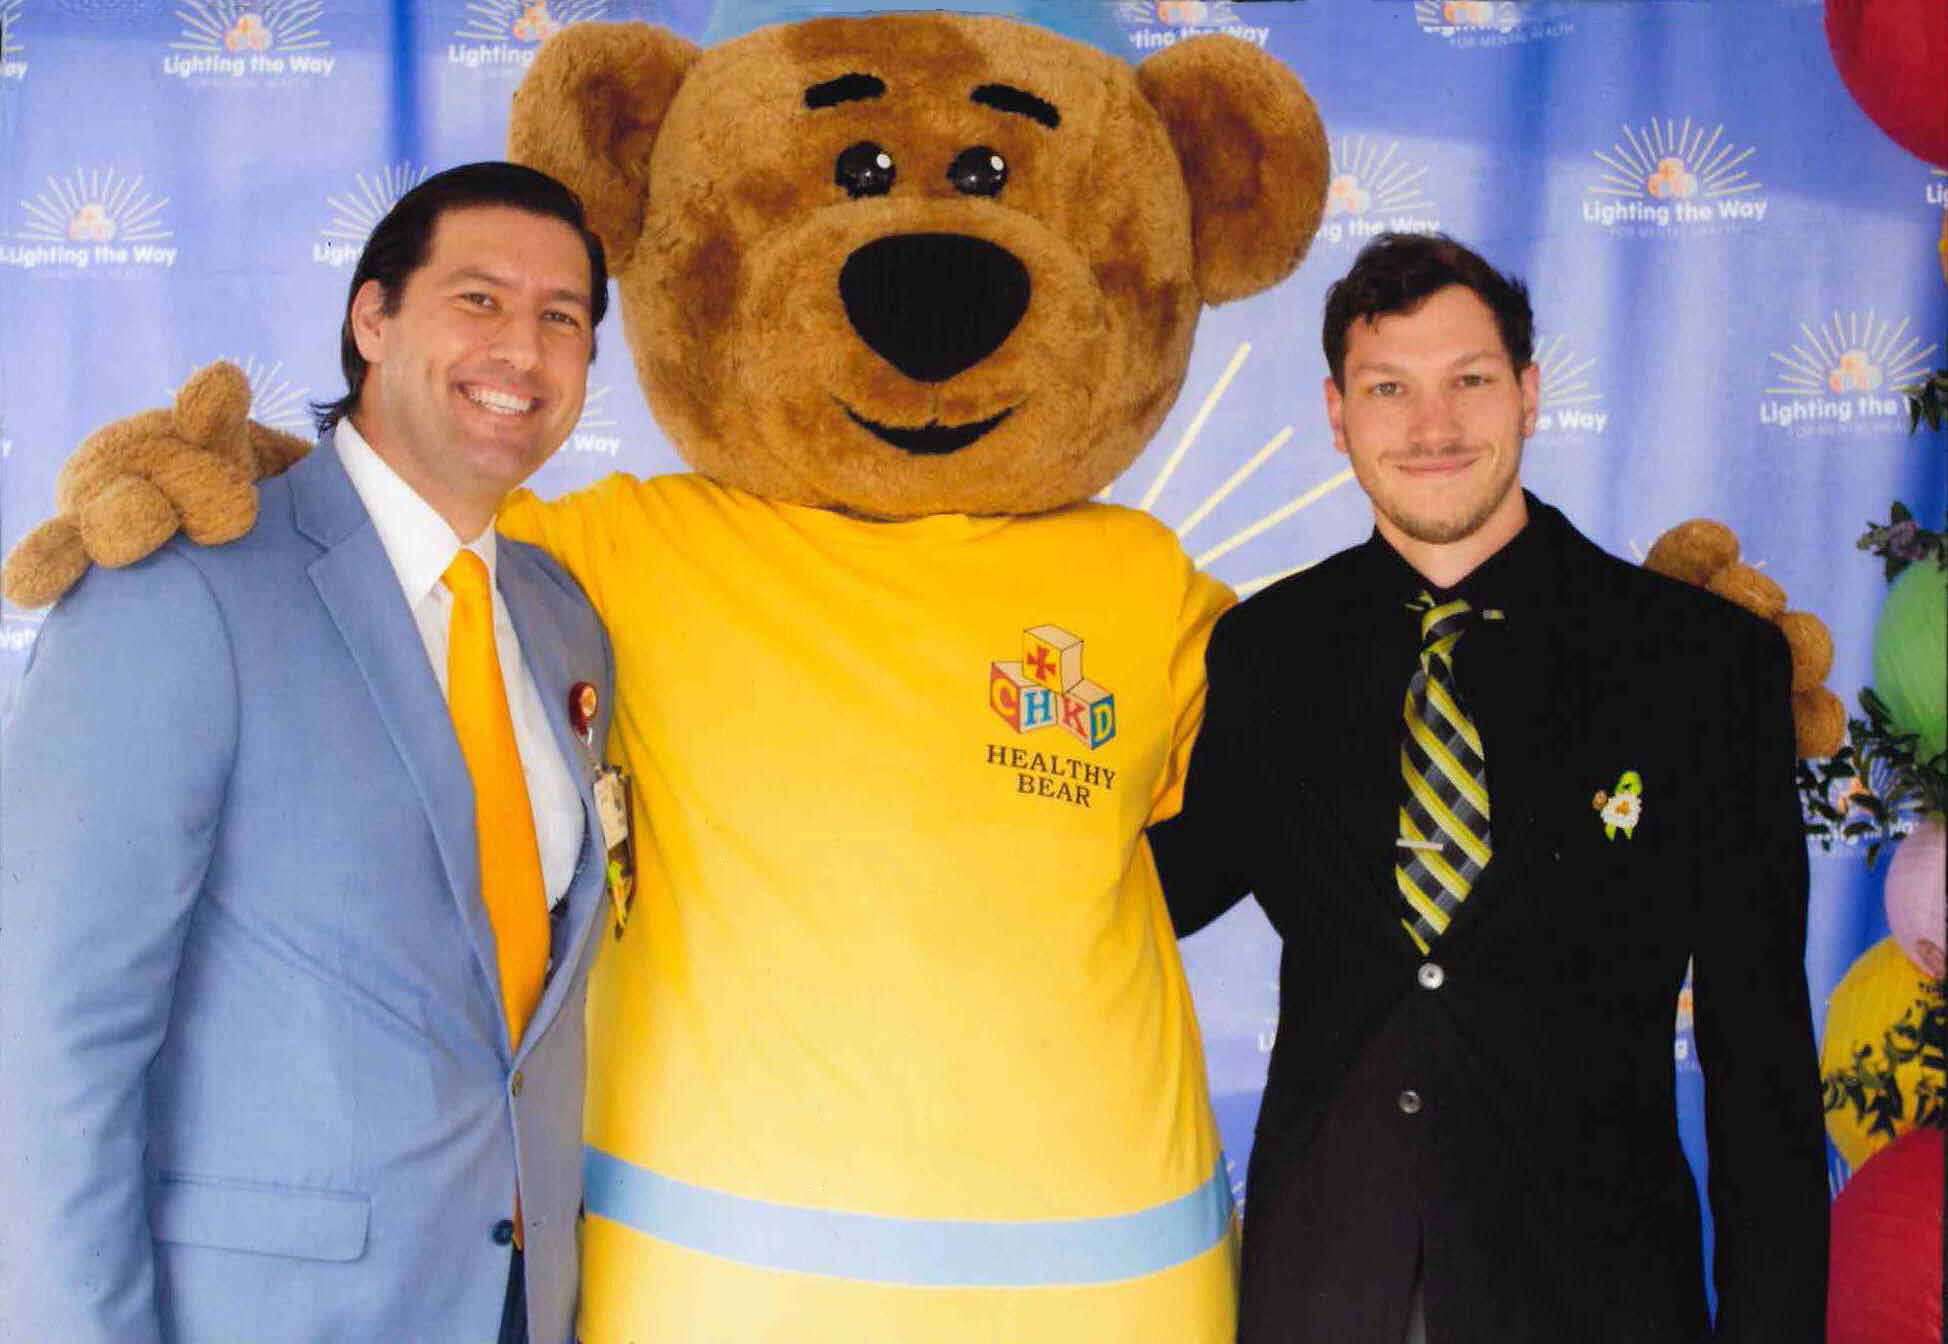 Tuna Baklan from CHKD, the CHKD Healthy Bear, and  Jonathan Hiser, Project Architect